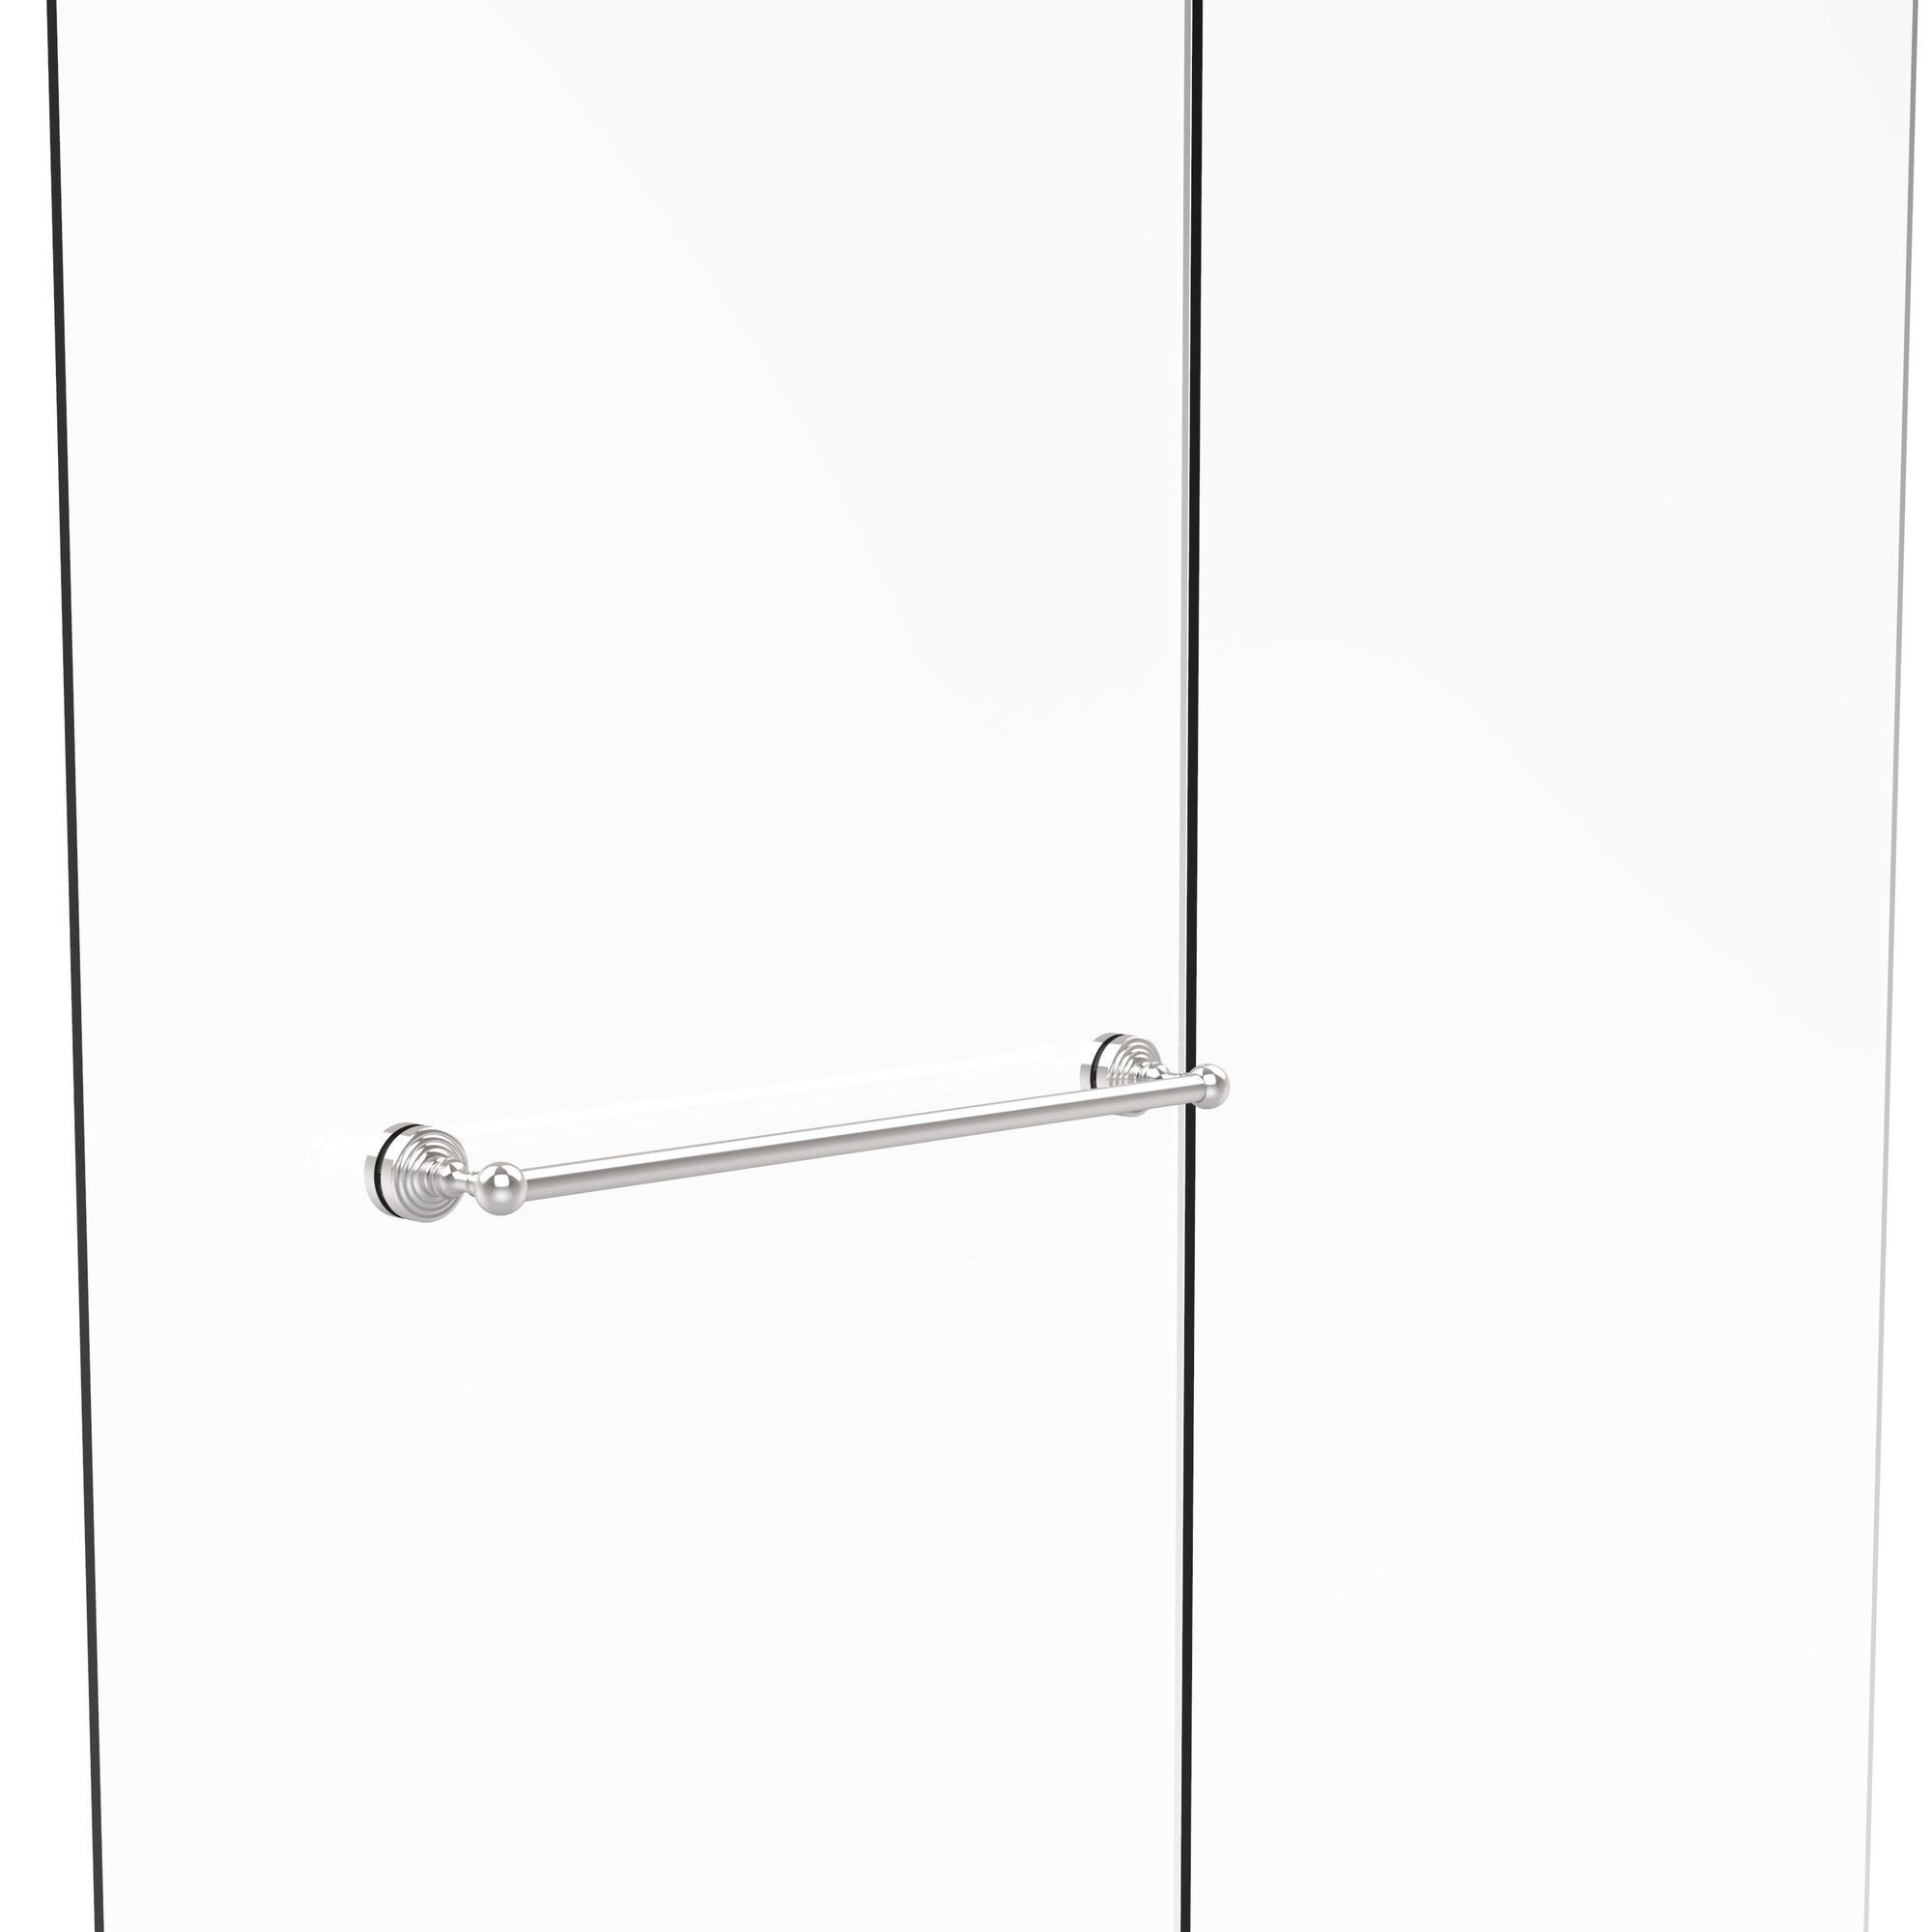 "Waverly Place 26"" Wall Mounted Towel Bar"